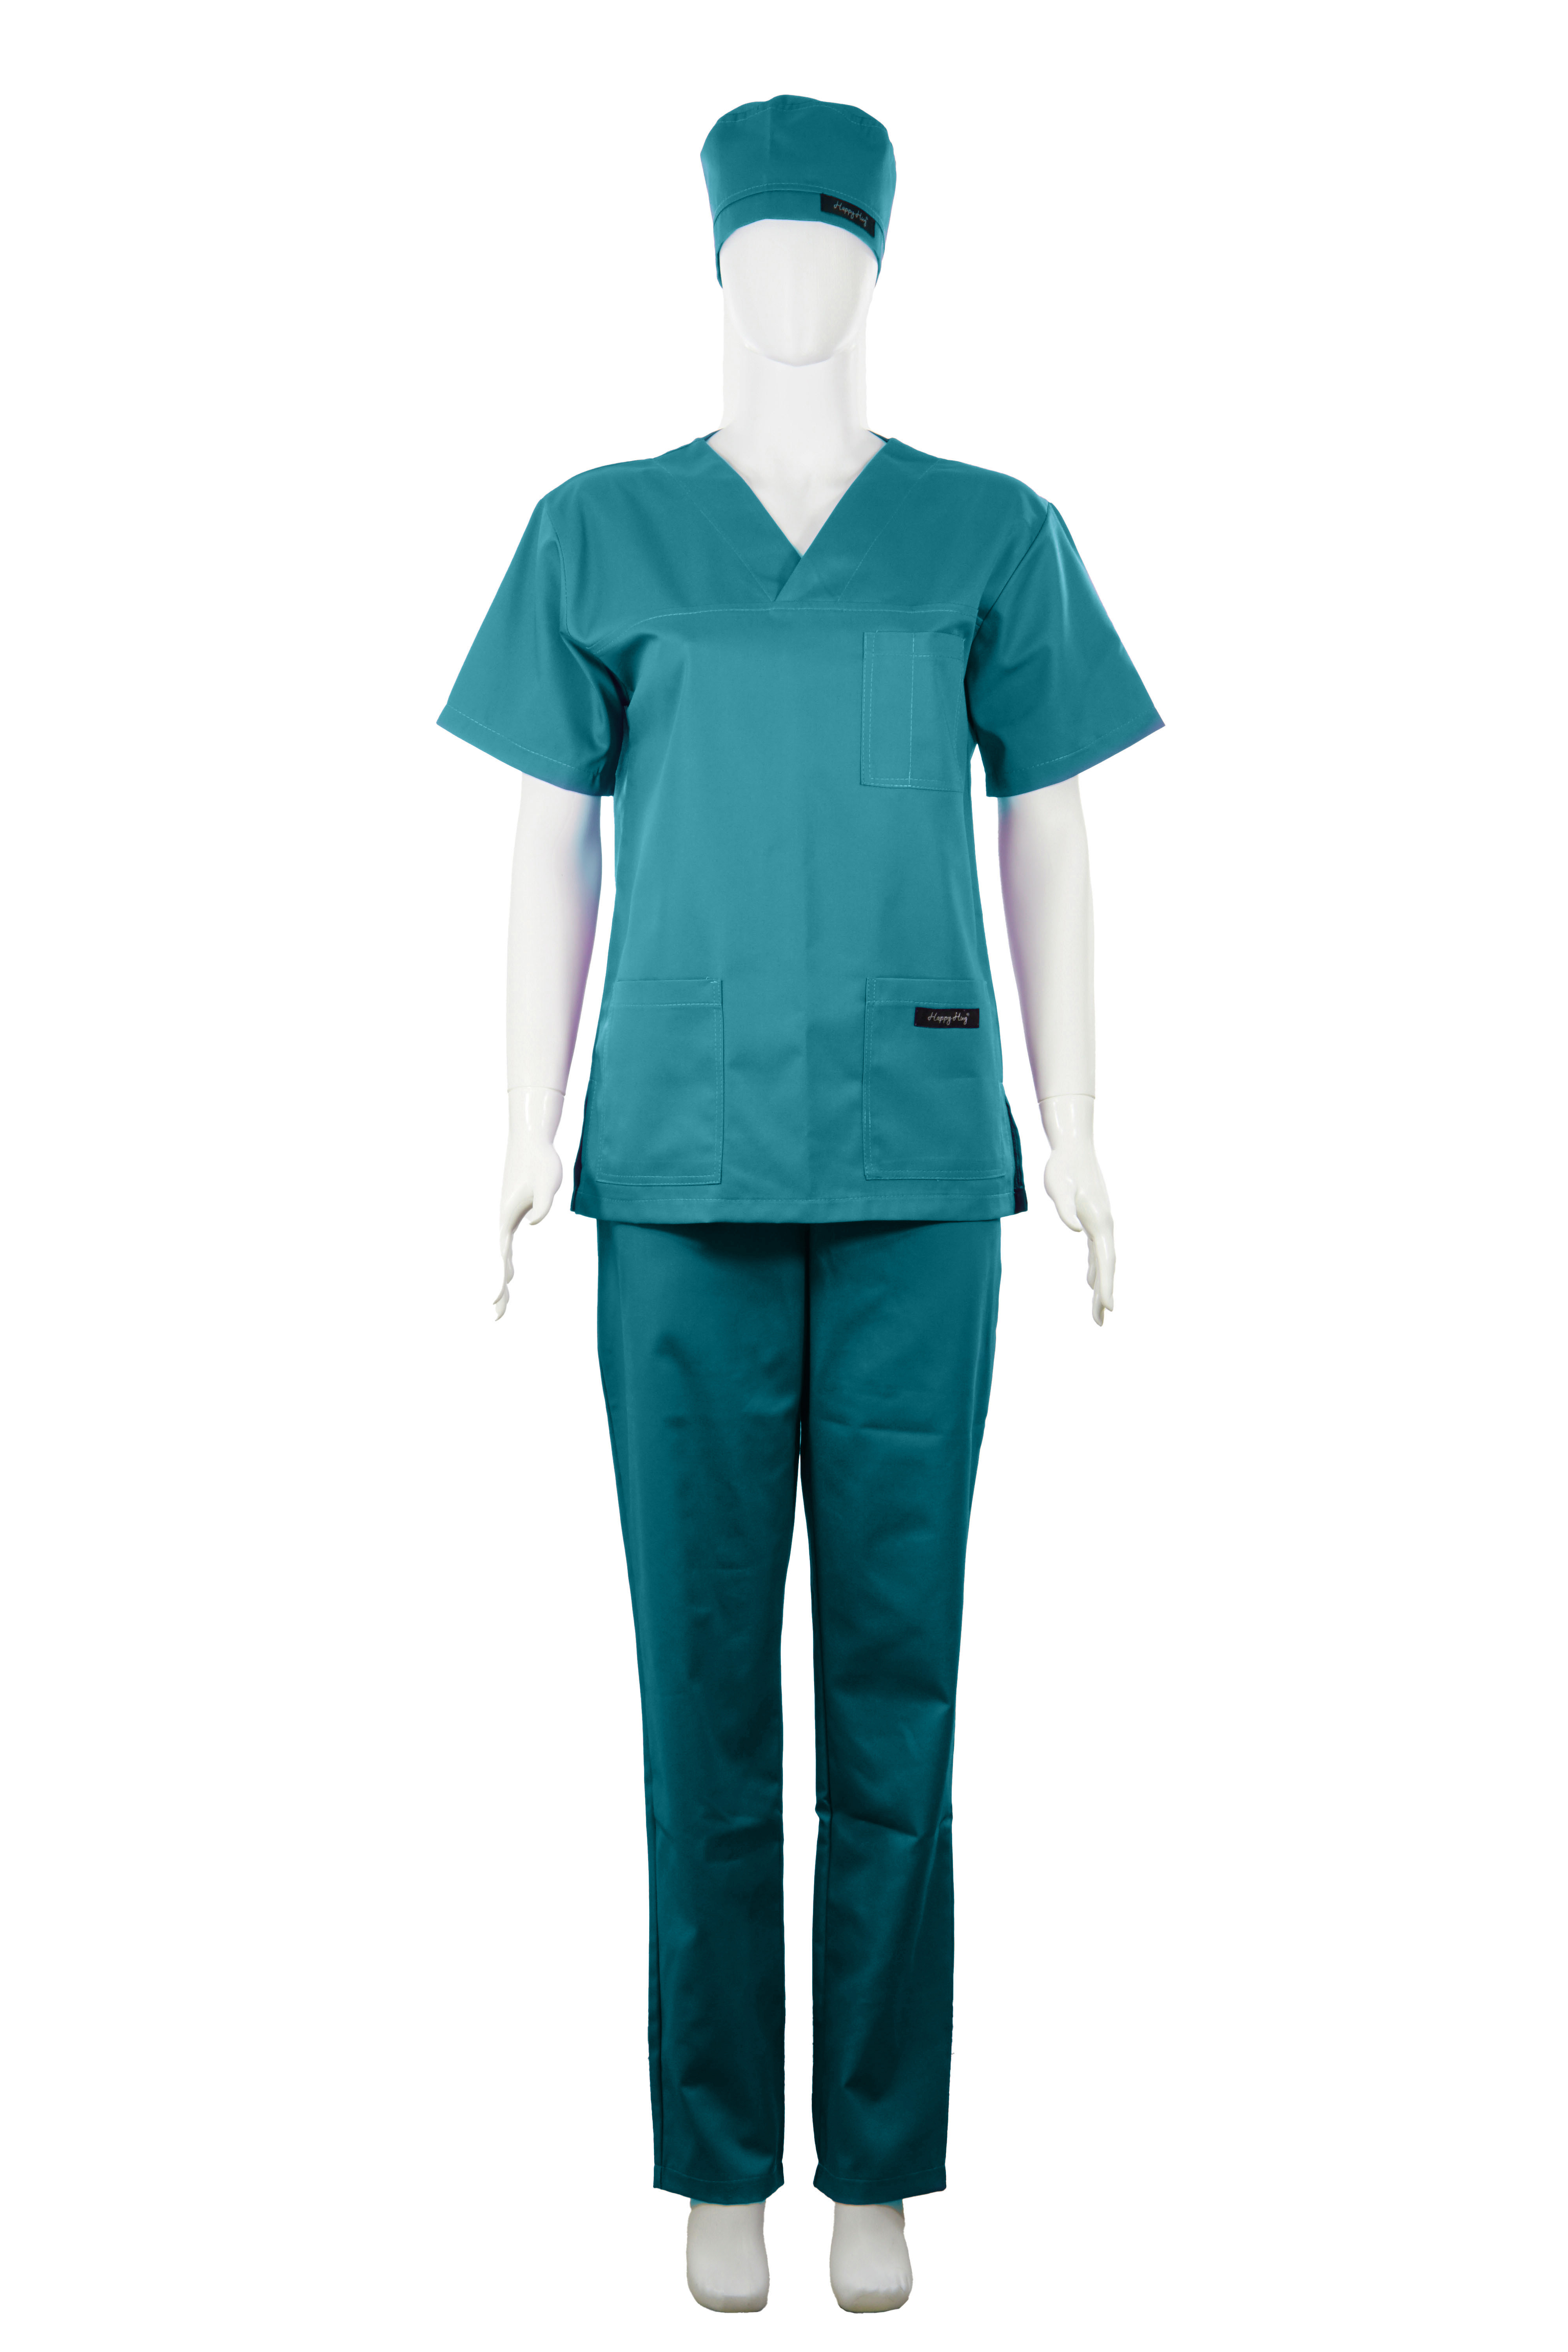 Costum Medical Unisex teal 2XL 2XL 1